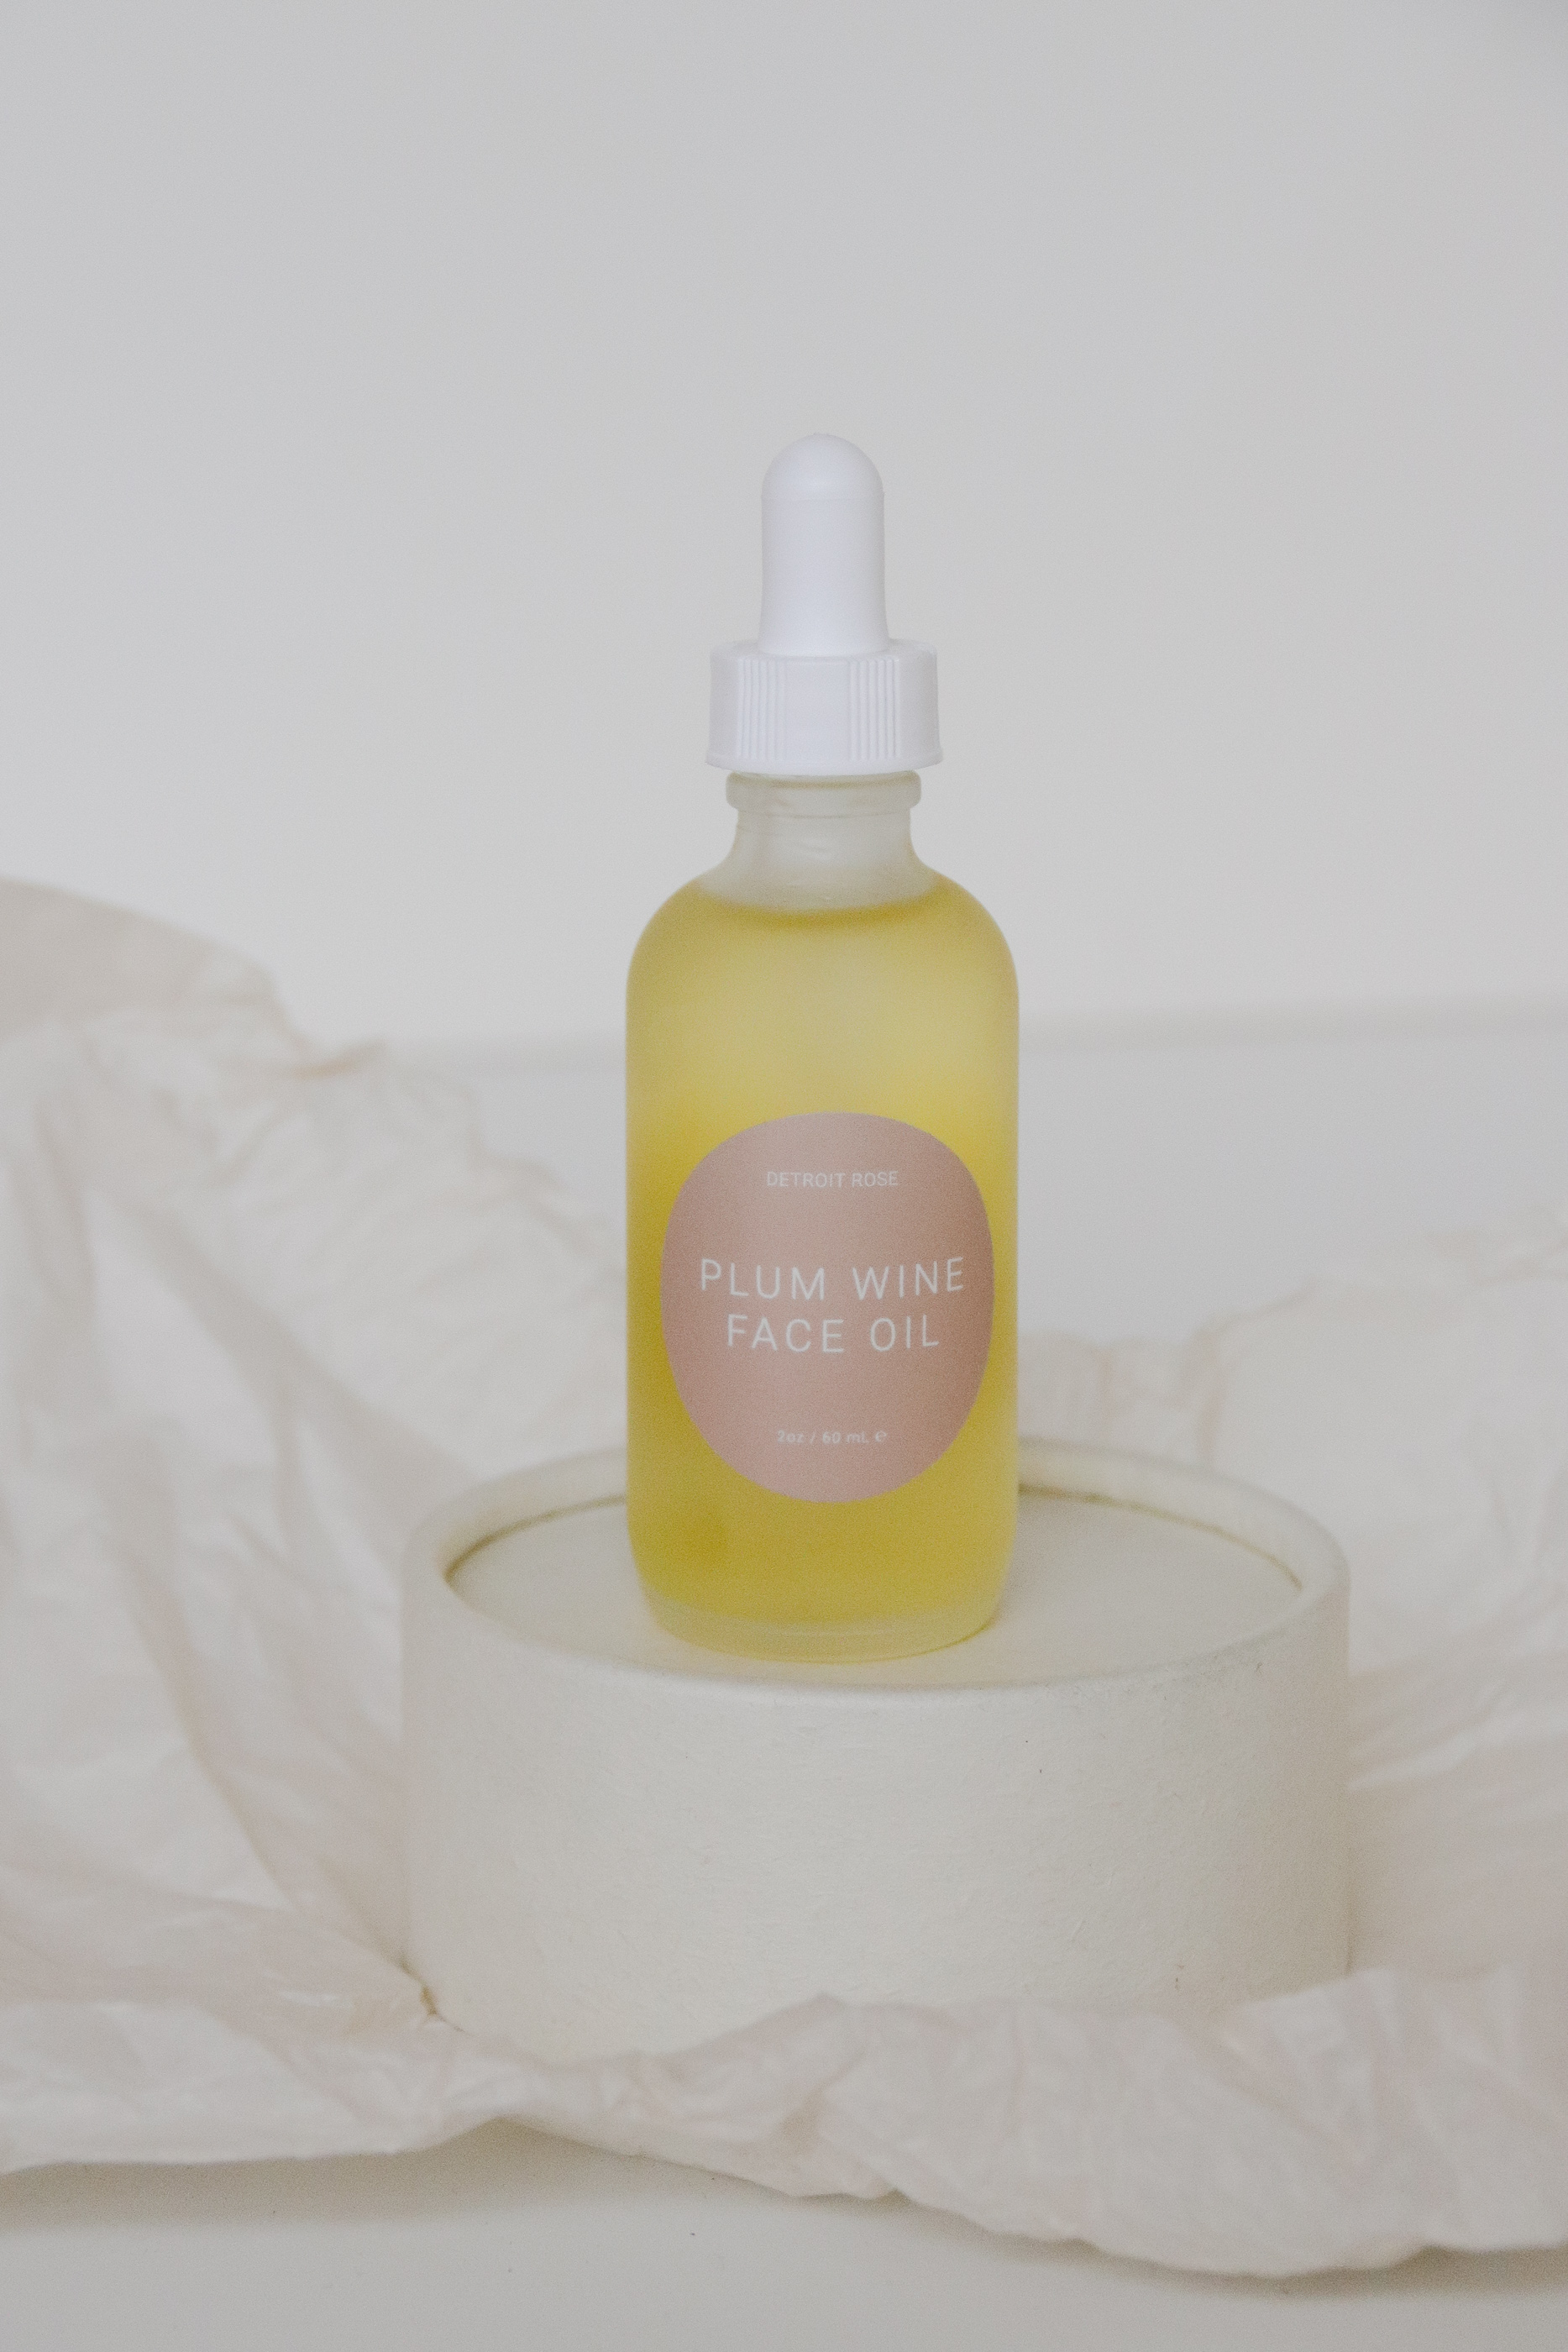 Detroit Rose Plum Wine Face Oil